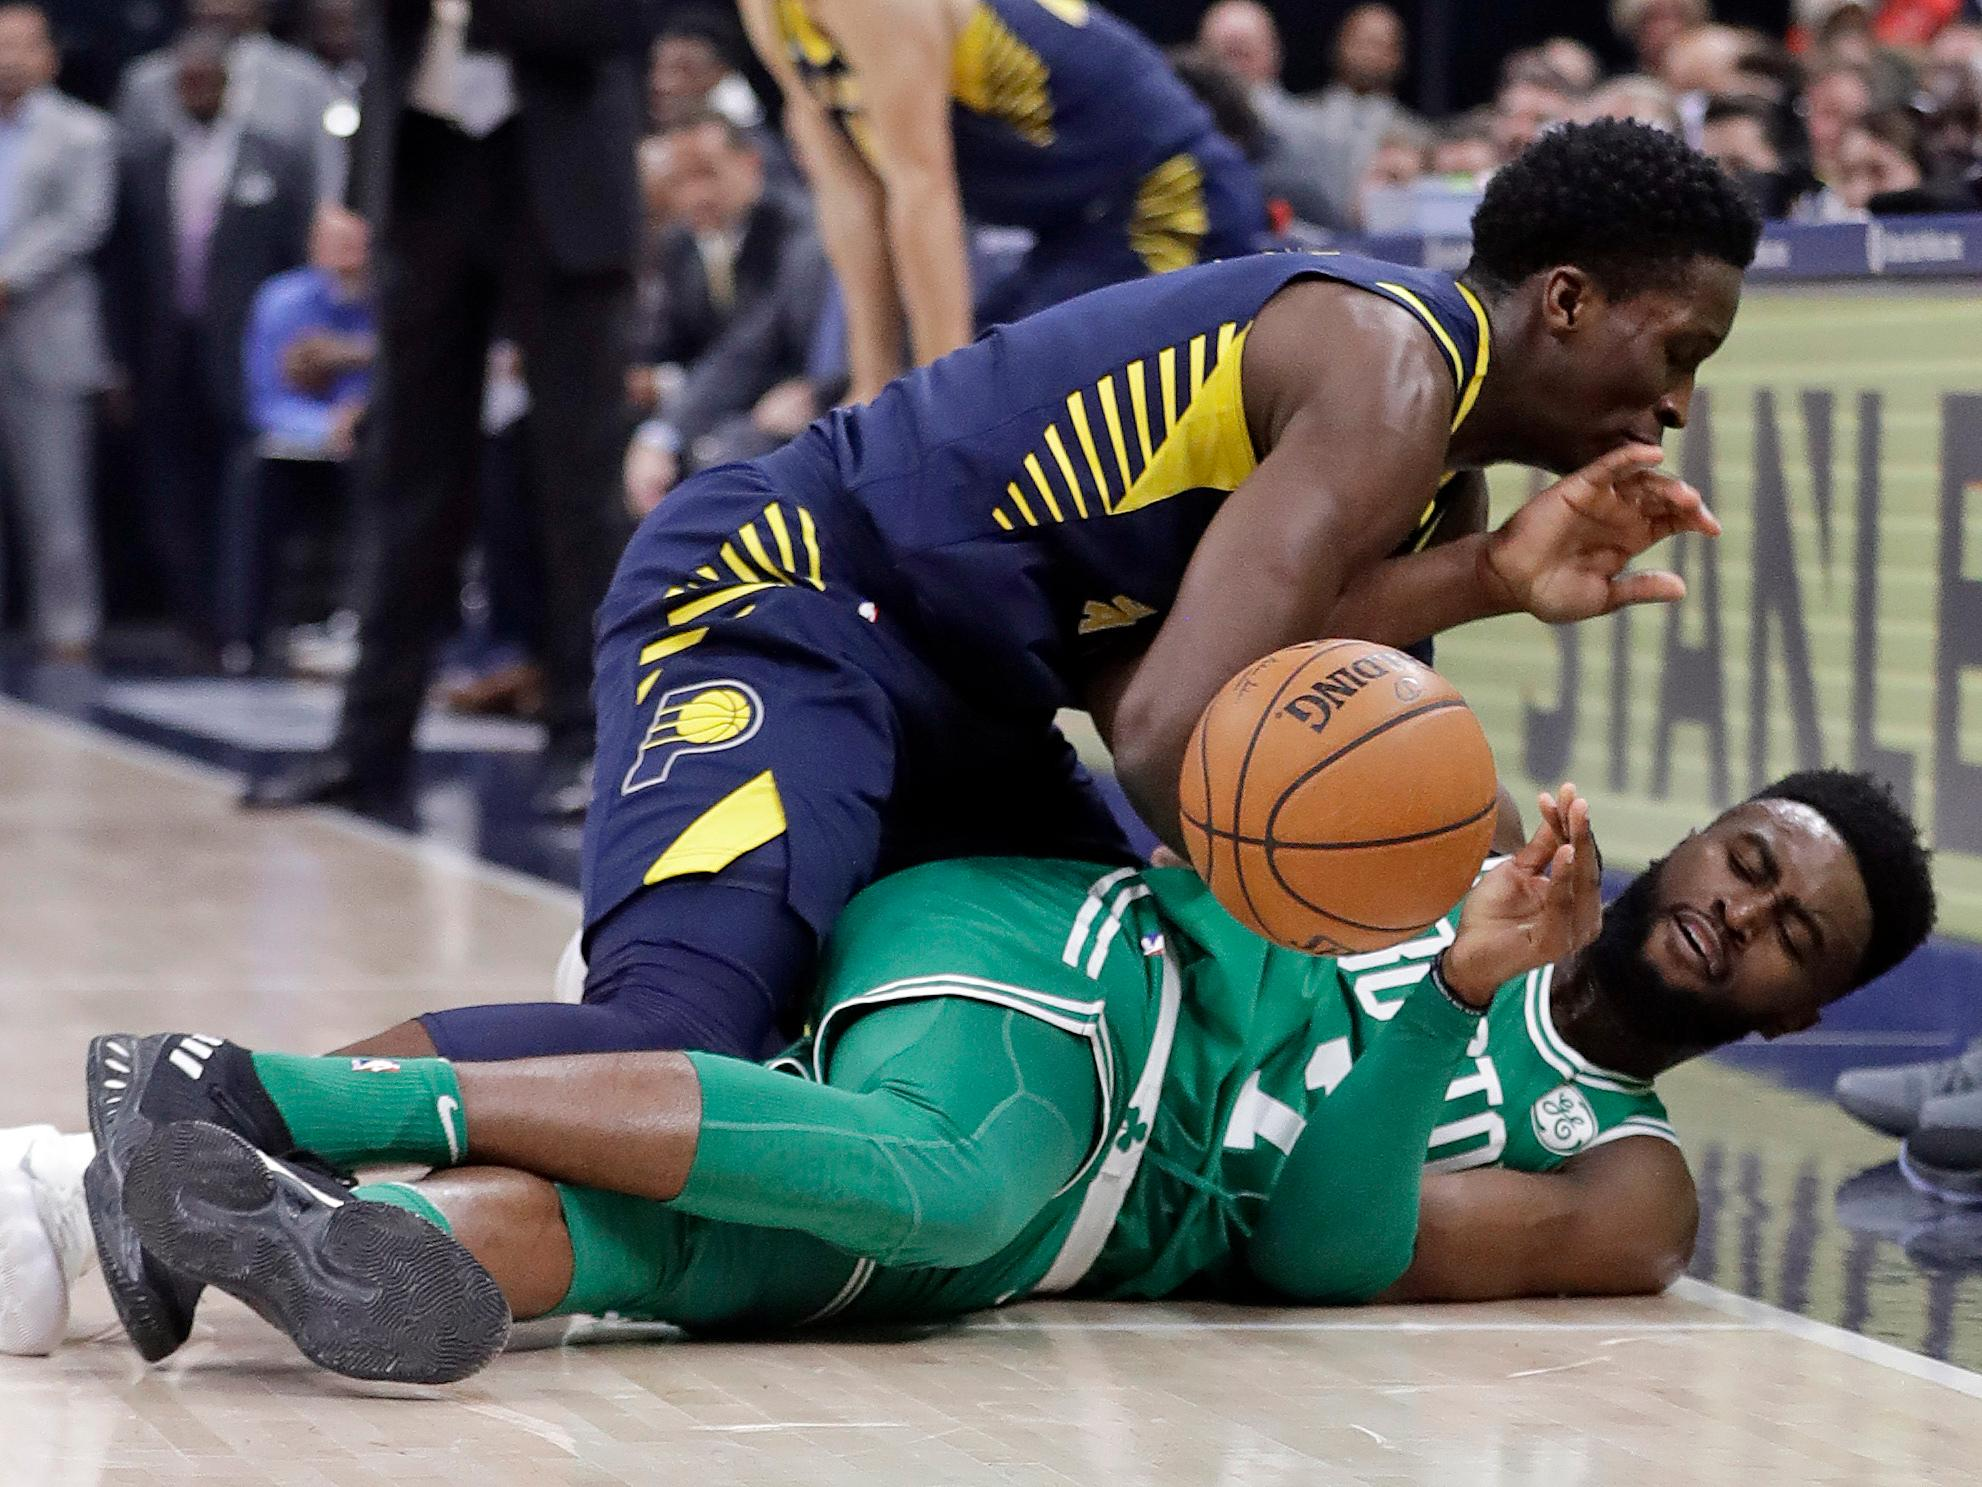 Indiana Pacers' Victor Oladipo, top, and Boston Celtics' Jaylen Brown battle for a loose ball during the first half of an NBA basketball game, Monday, Dec. 18, 2017, in Indianapolis.(AP Photo/Darron Cummings)